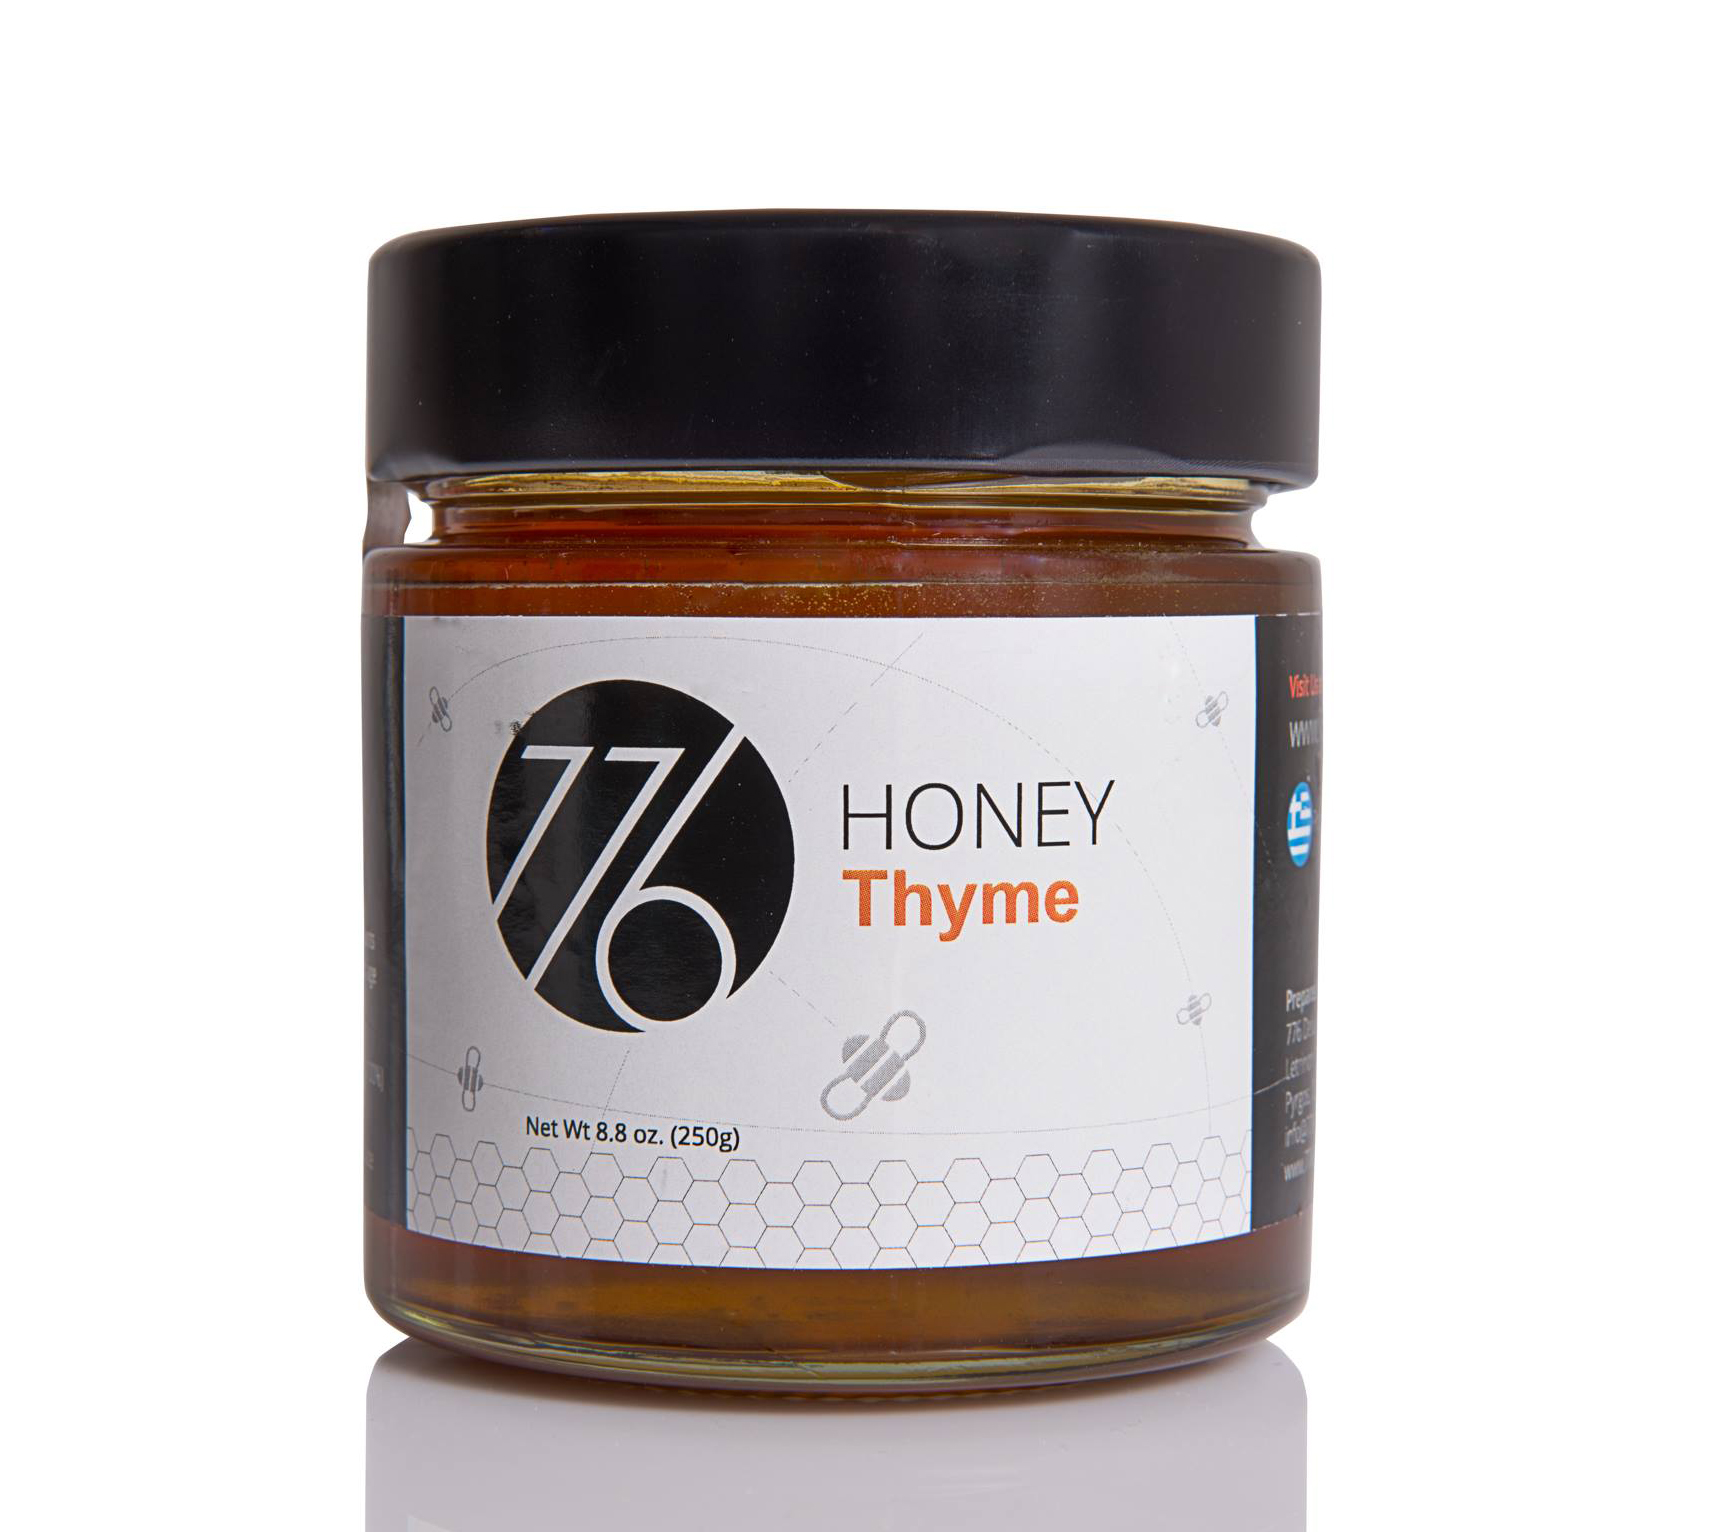 HONEY THYME 100% HONEY JAR